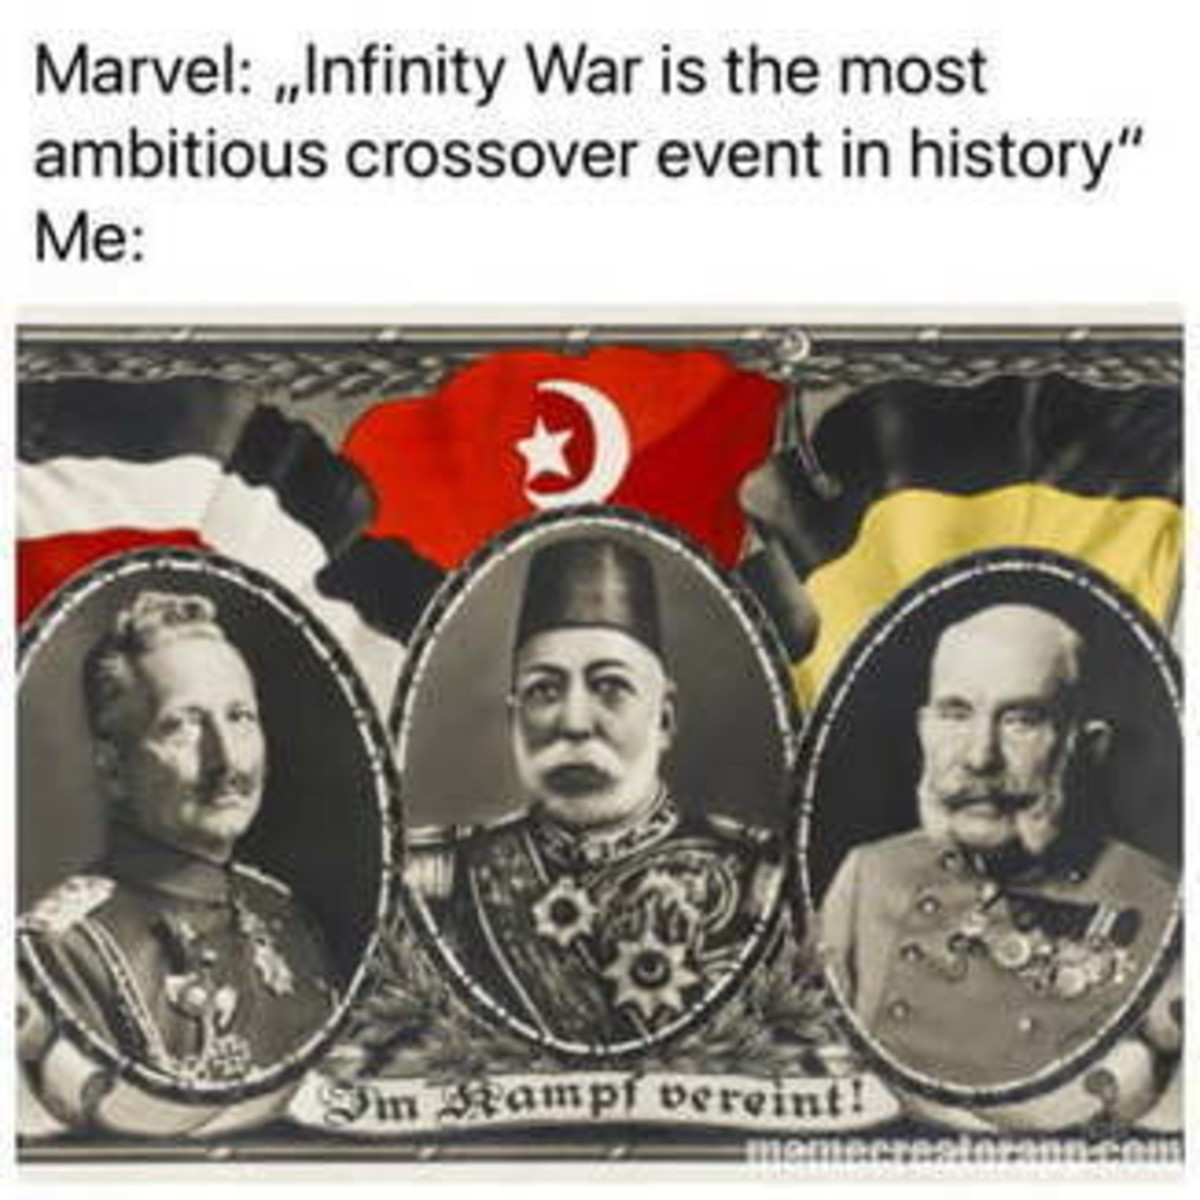 Best Crossover. .. Literally who?